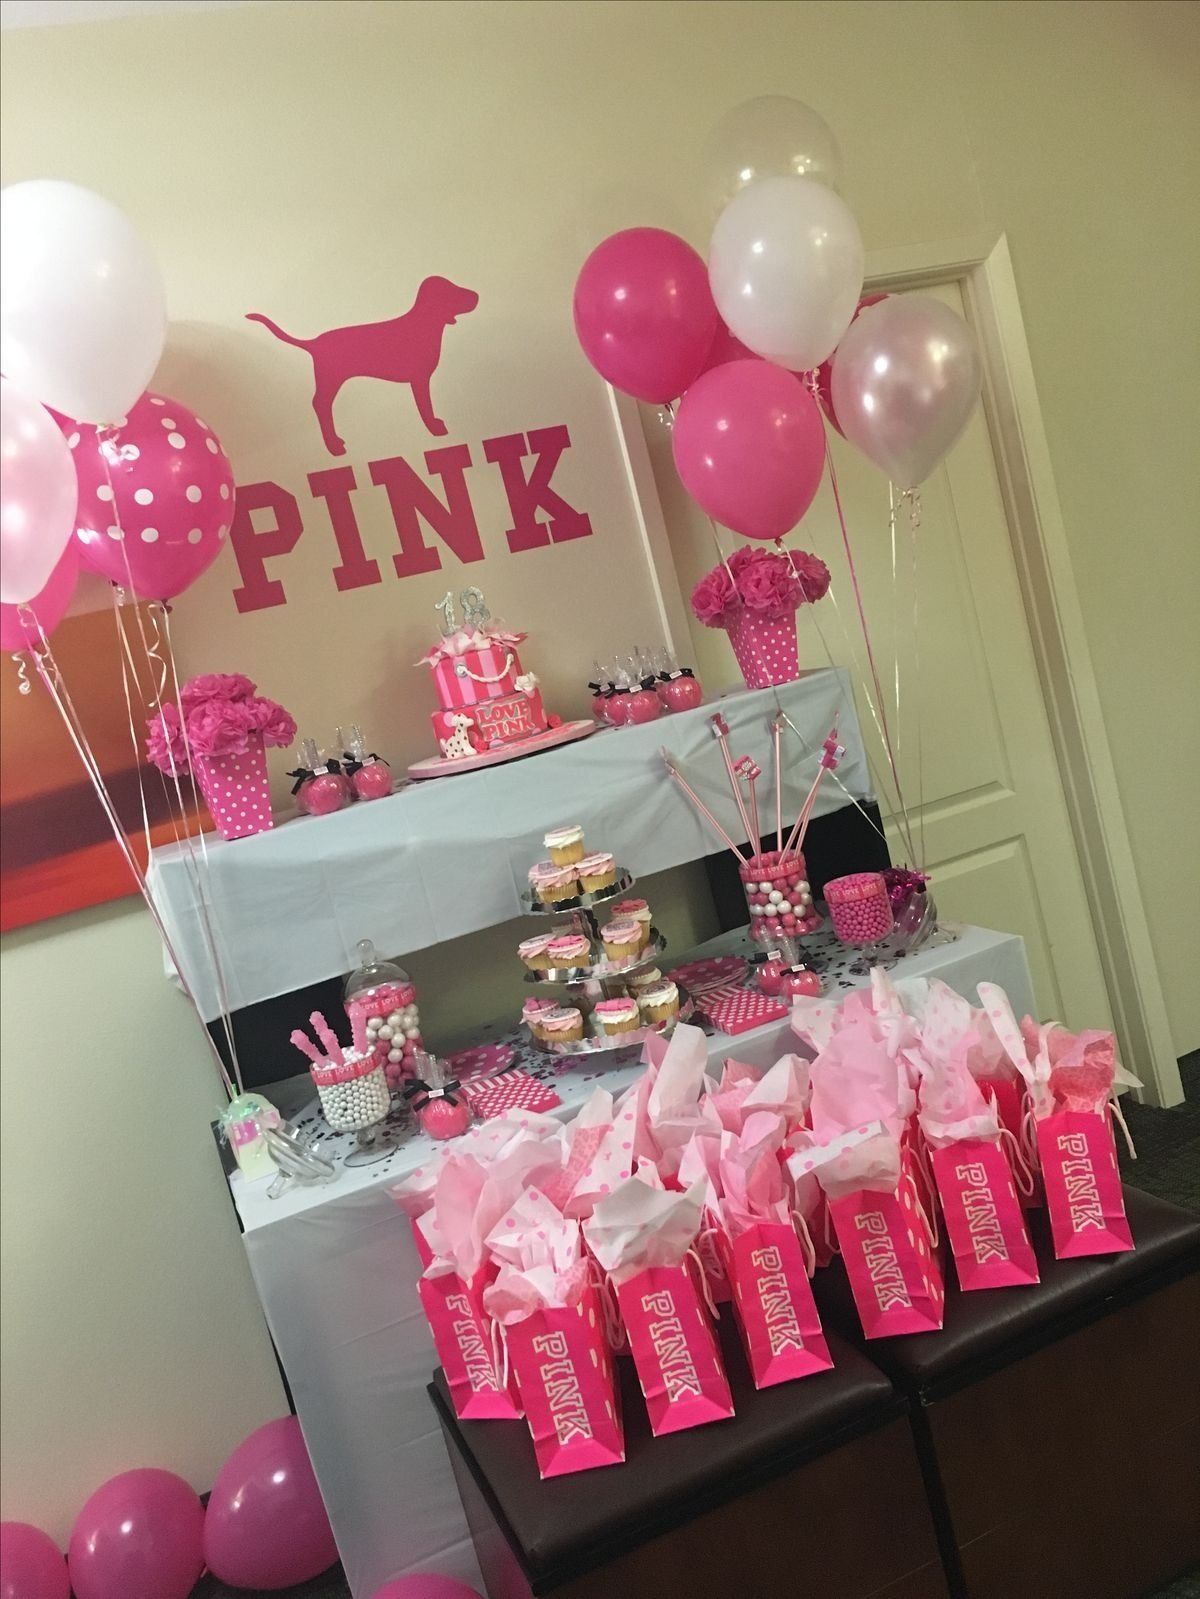 10 Spectacular Birthday Party Ideas For 13 Year Old Girl themes birthday 15th birthday party ideas for boy with 15th 1 2020